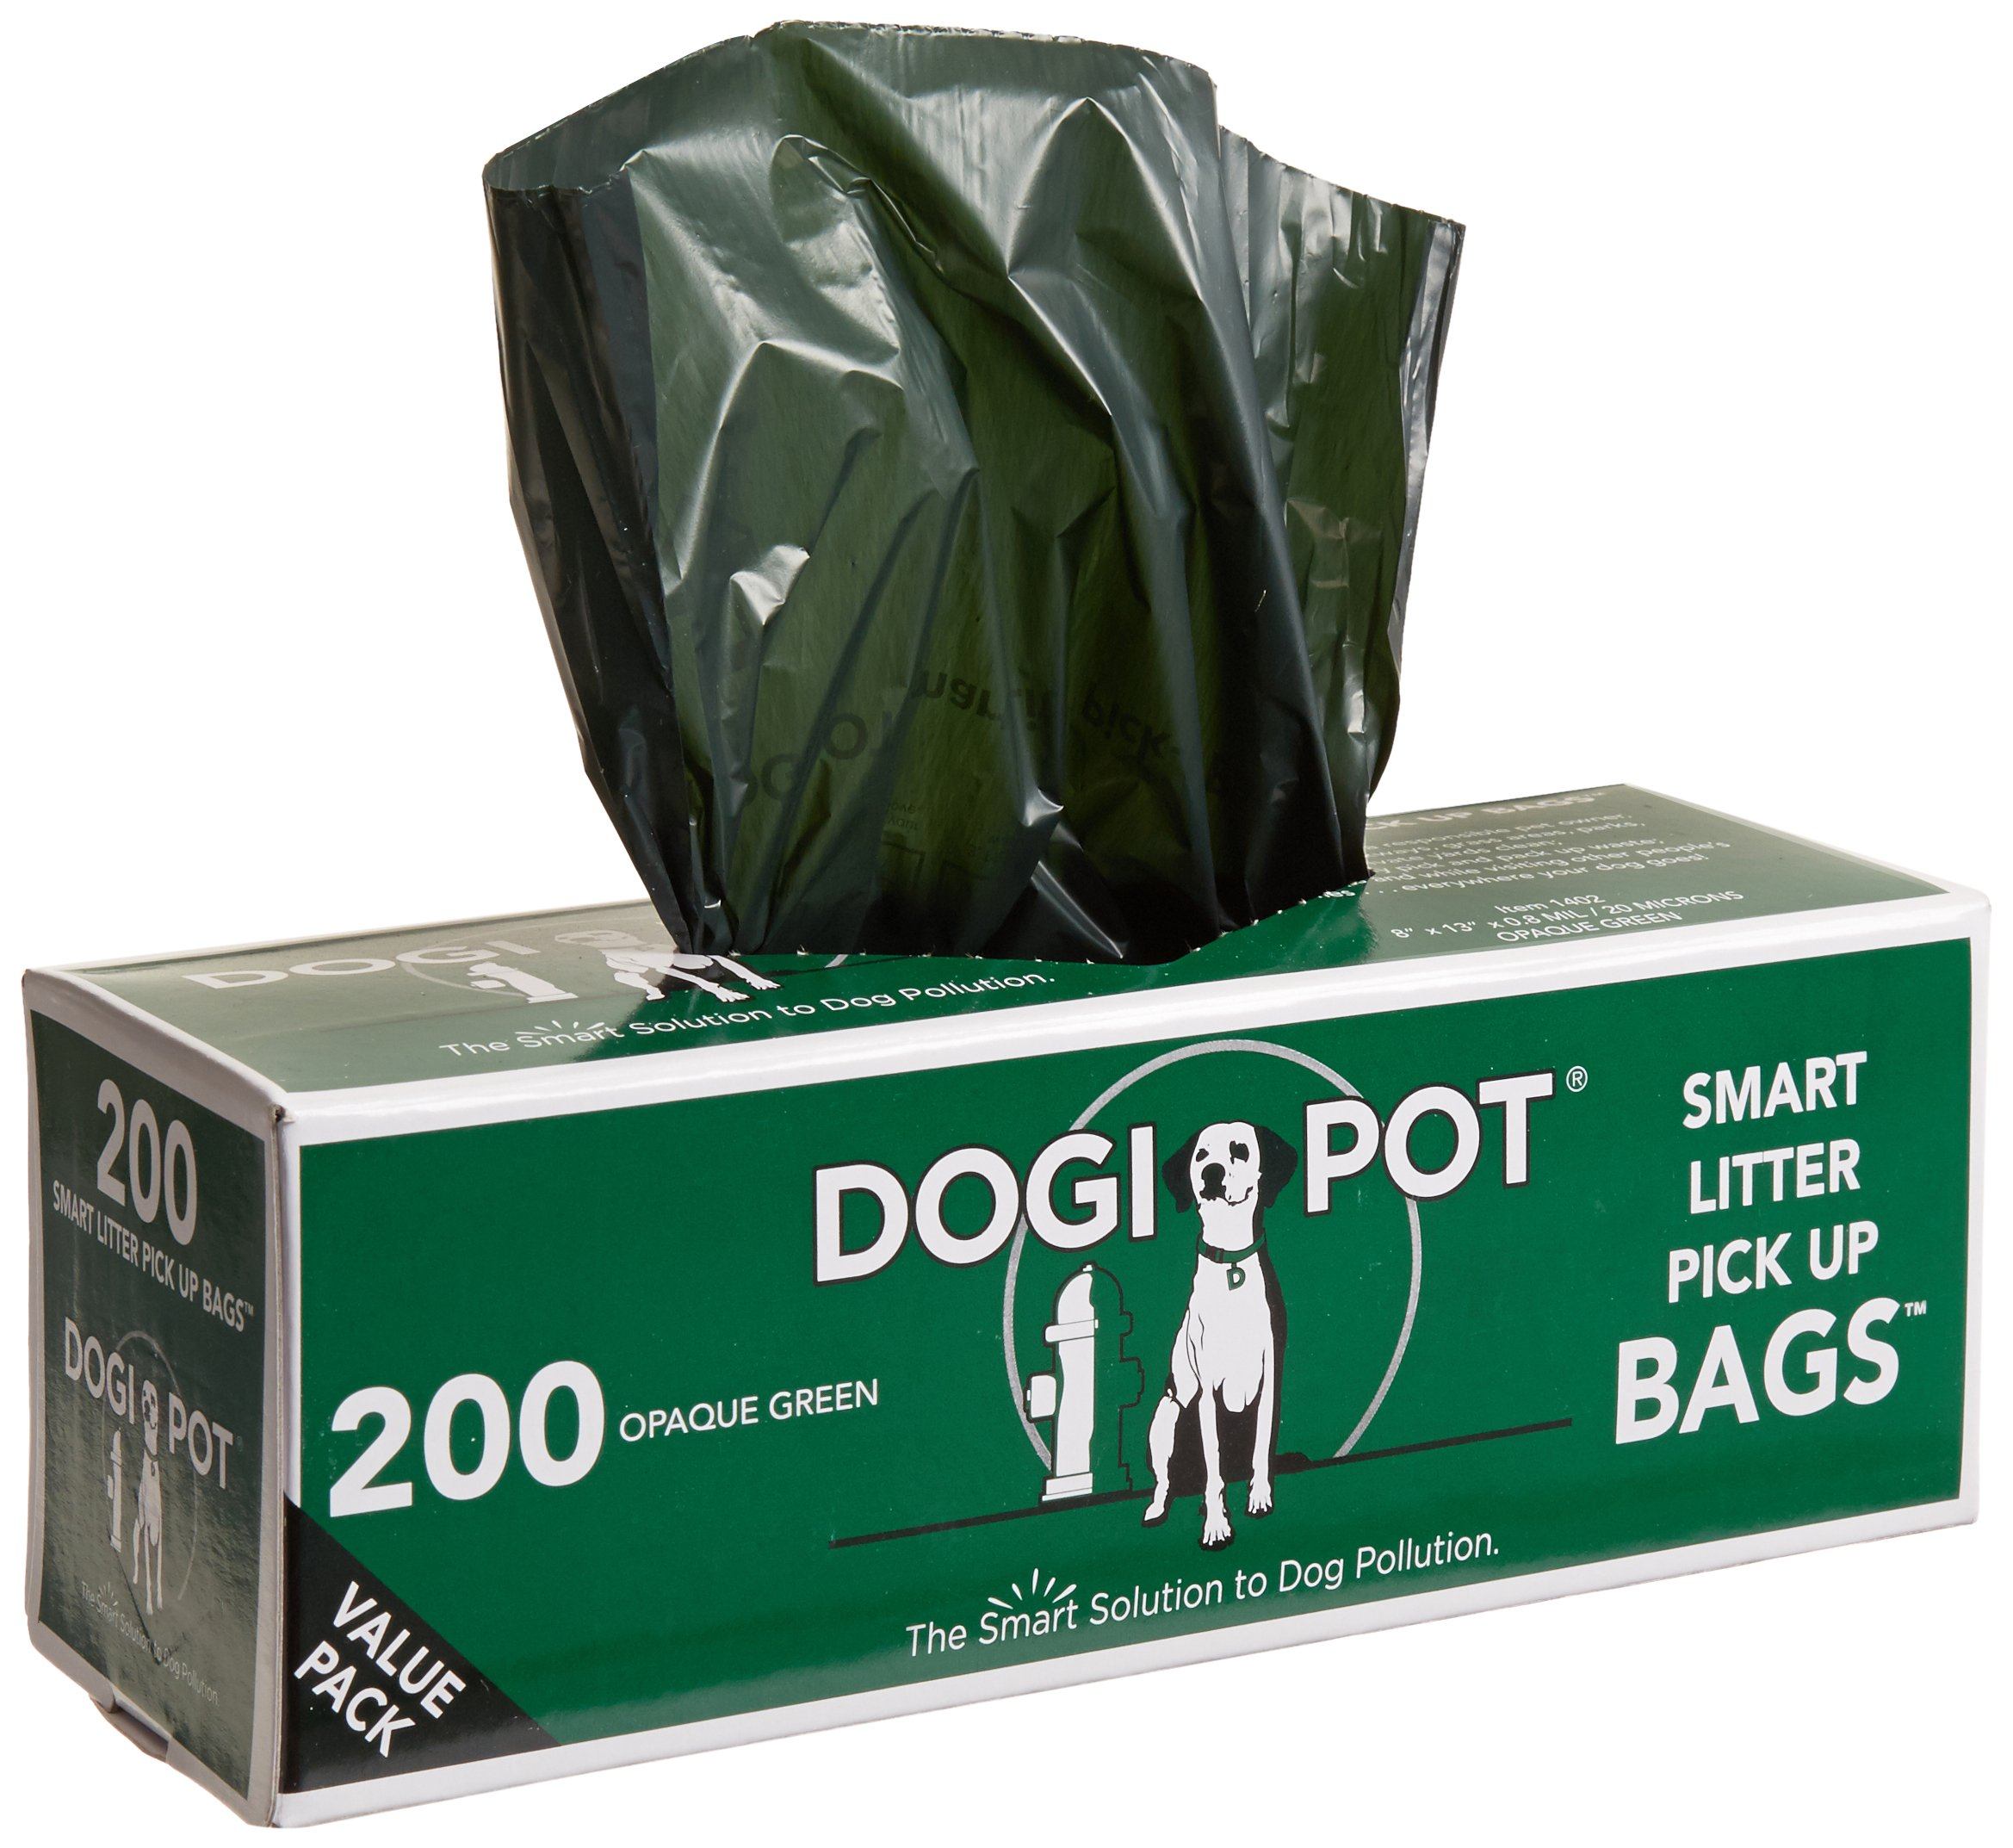 DOGIPOT 1402-10 10 Roll Case, Litter Pick up Bag Rolls, 200 Bags per Roll, Pack of 10 by Dogipot